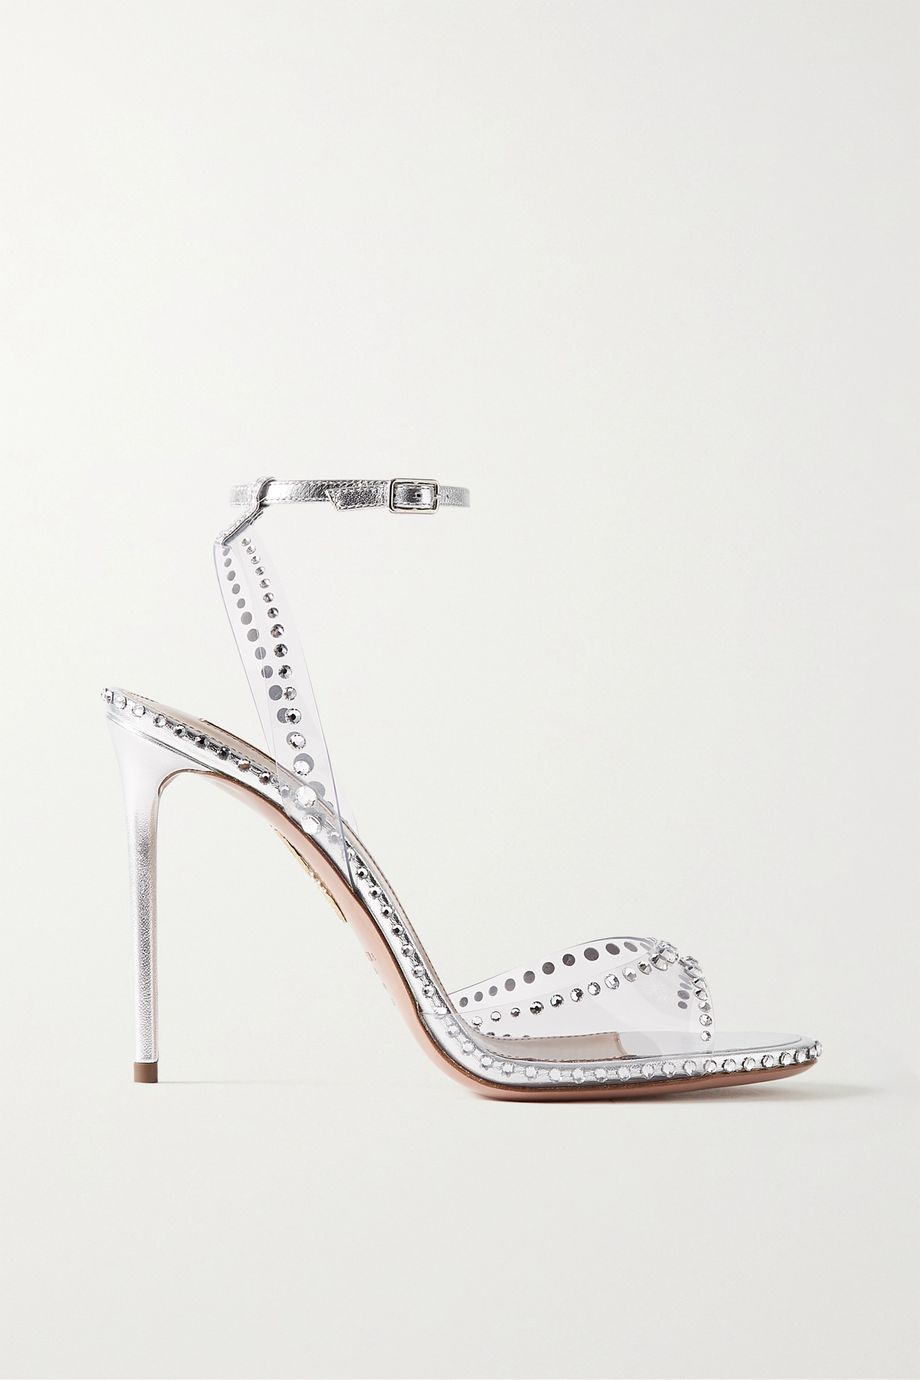 Aquazzura Dream 105 crystal-embellished PVC and leather sandals